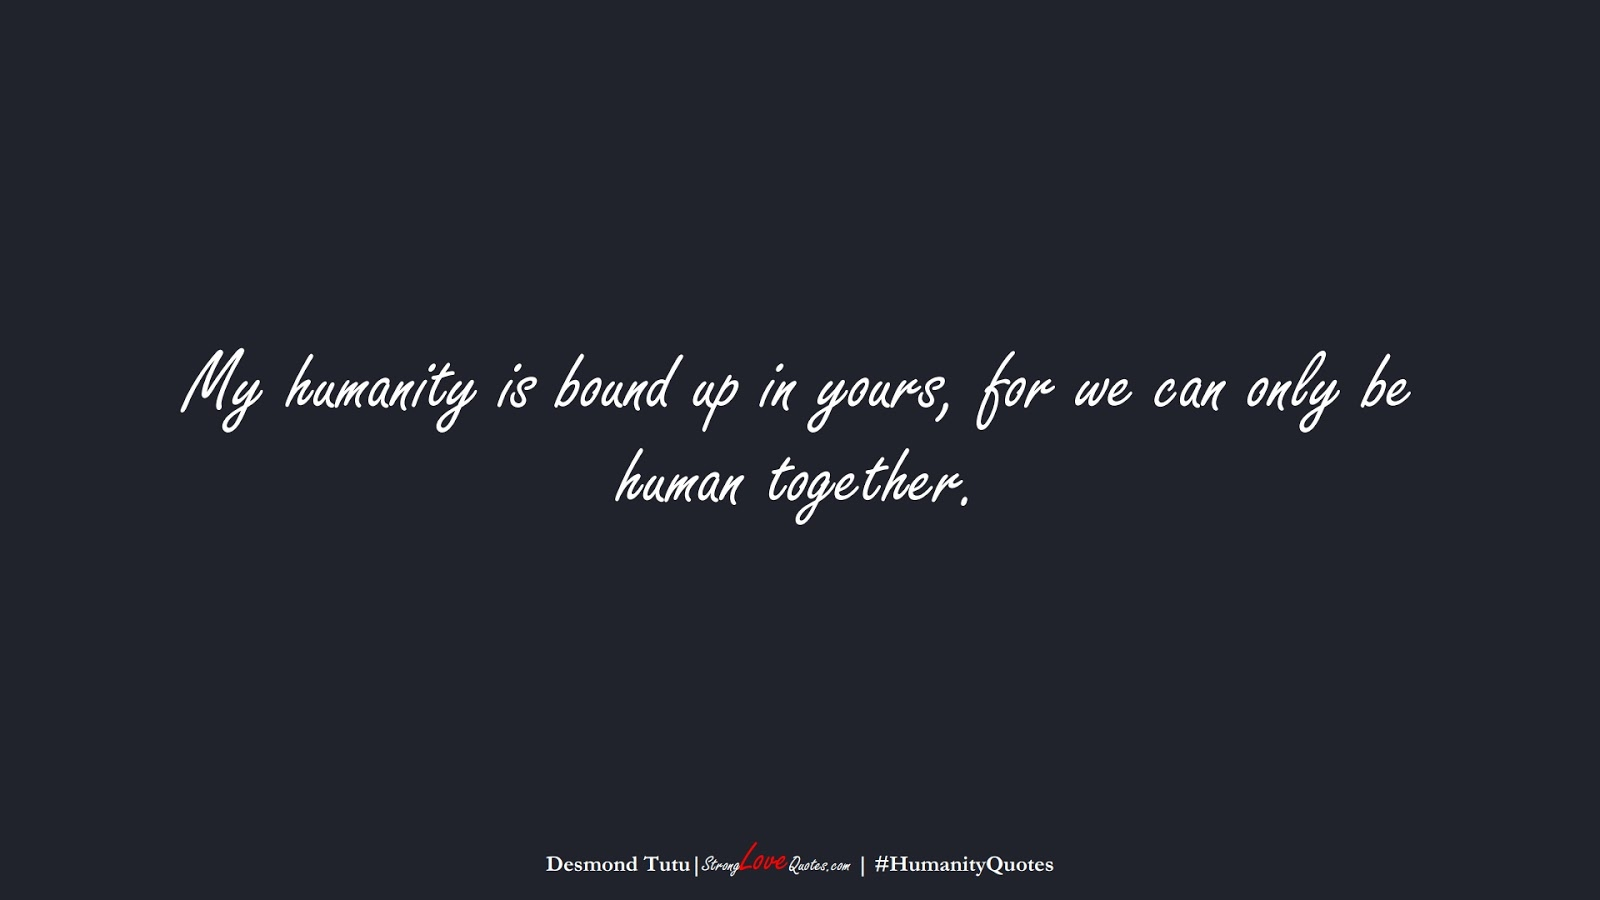 My humanity is bound up in yours, for we can only be human together. (Desmond Tutu);  #HumanityQuotes